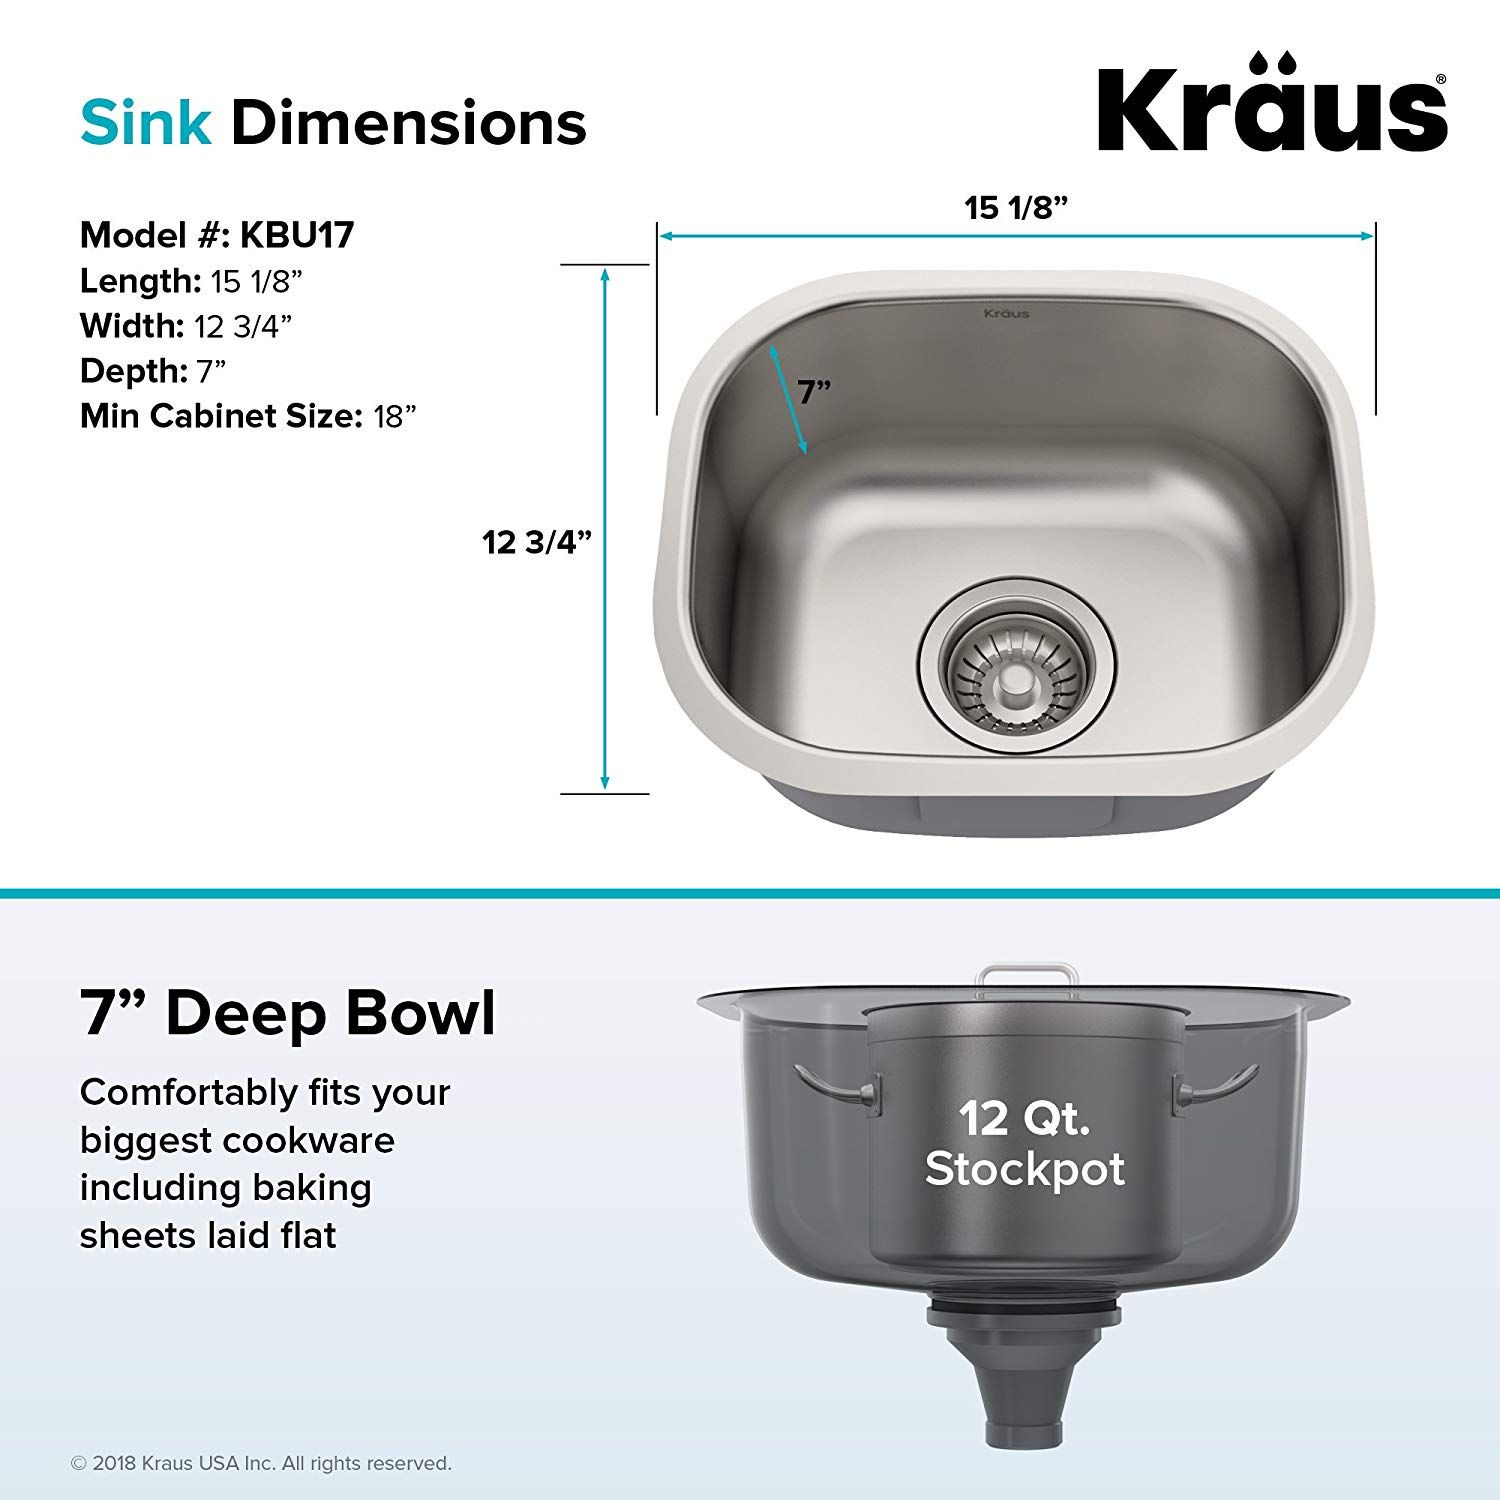 Pinitforlater Findoutmore Small Condo Kitchen Remodel Kitchen Set Includes Sink Drain Assembly Kraus Kitchen Towel Sink Kitchen Sink Small Condo Kitchen